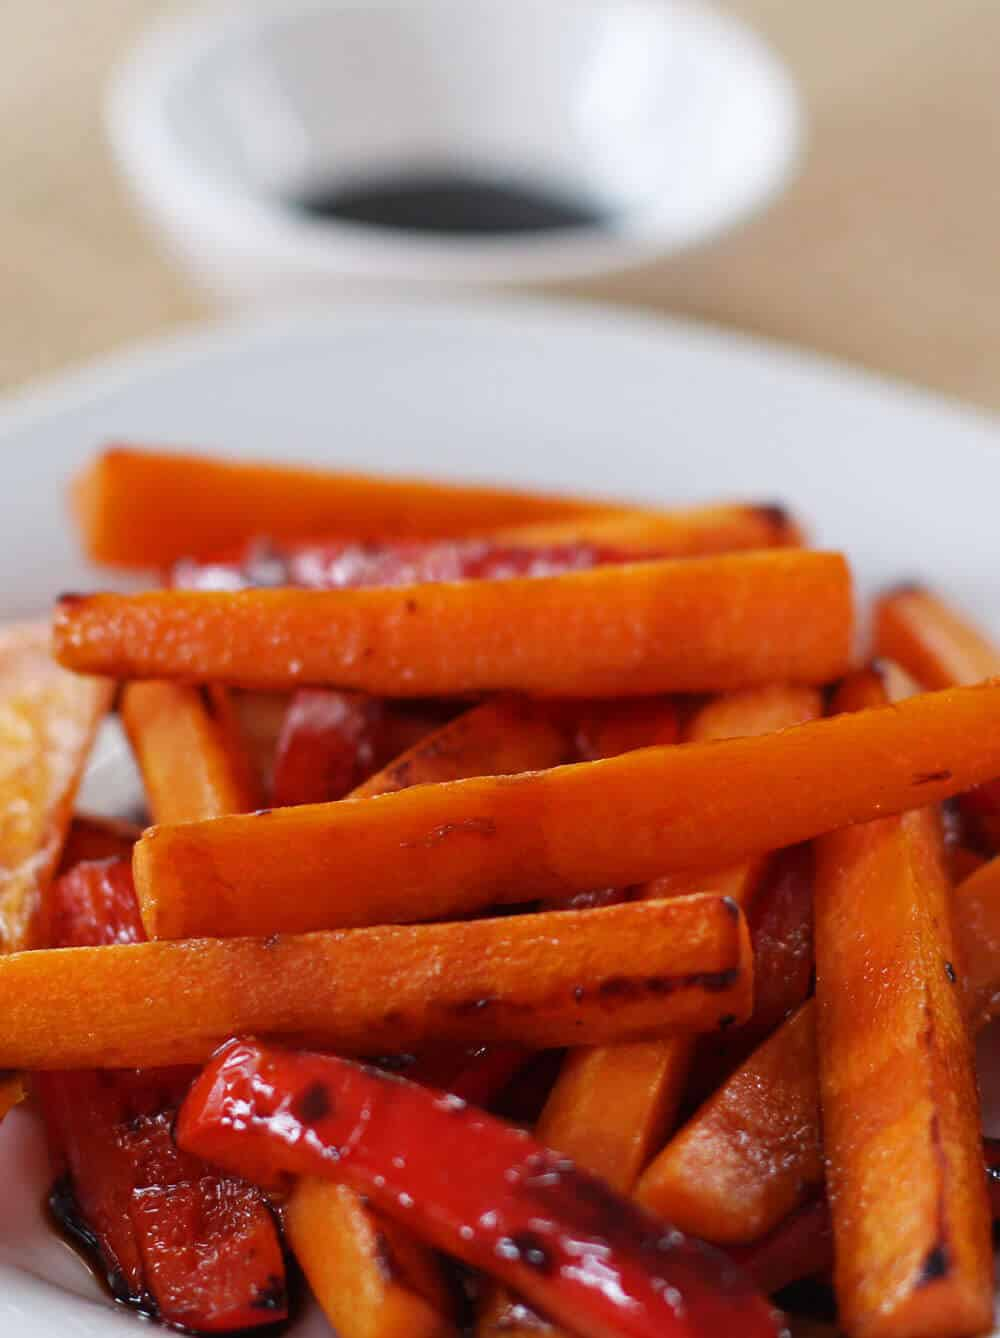 Stove top balsamic glazed carrots are a simple, nutritious, and delicious side dish - especially in cold weather.